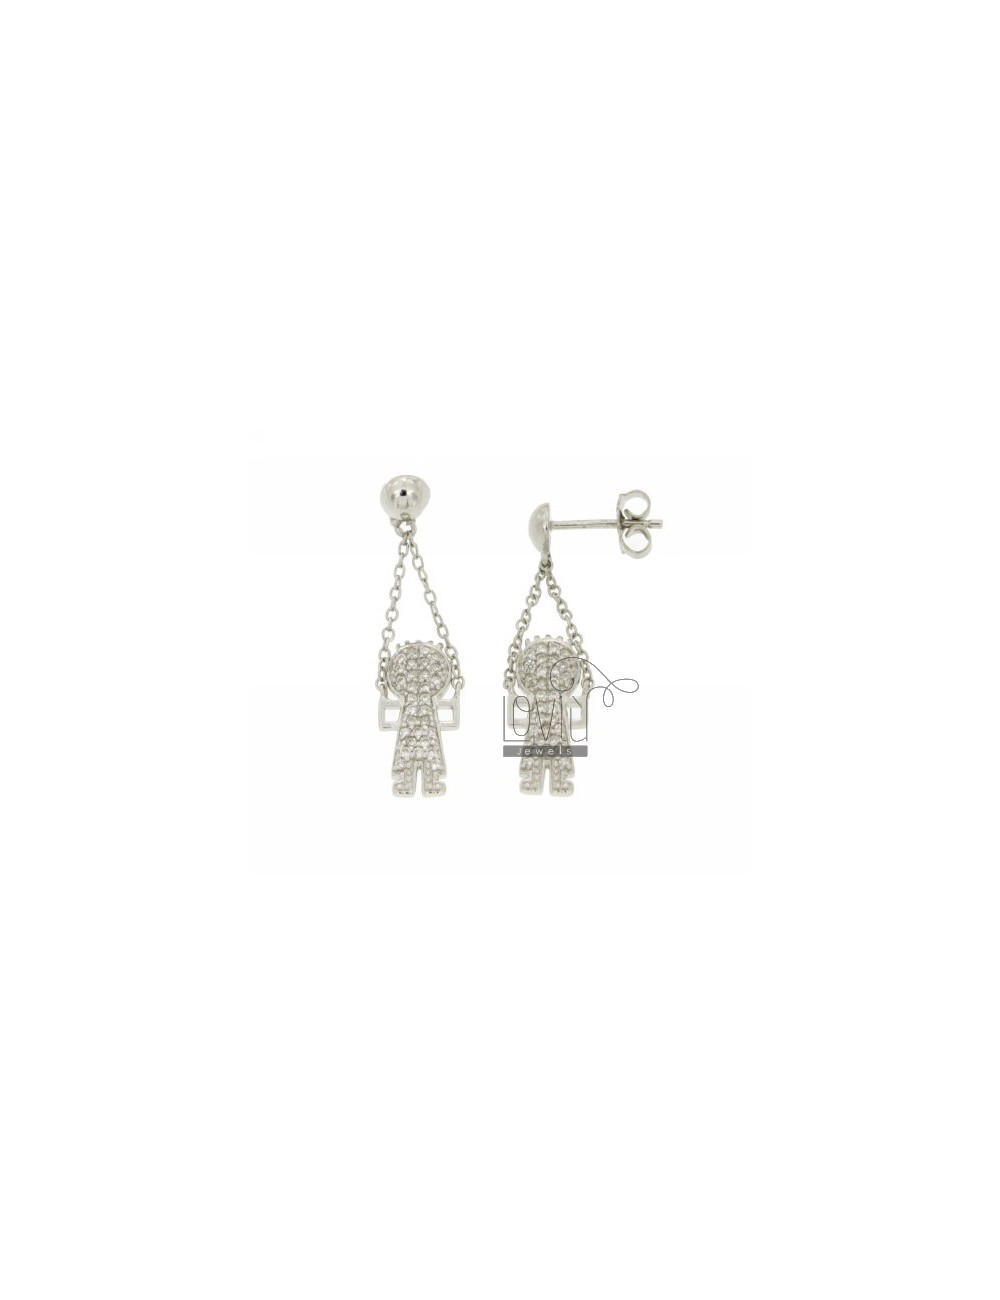 BOY WITH EARRINGS PENDANT PAVE &39OF ZIRCONIA IN RHODIUM AG TIT 925 ‰